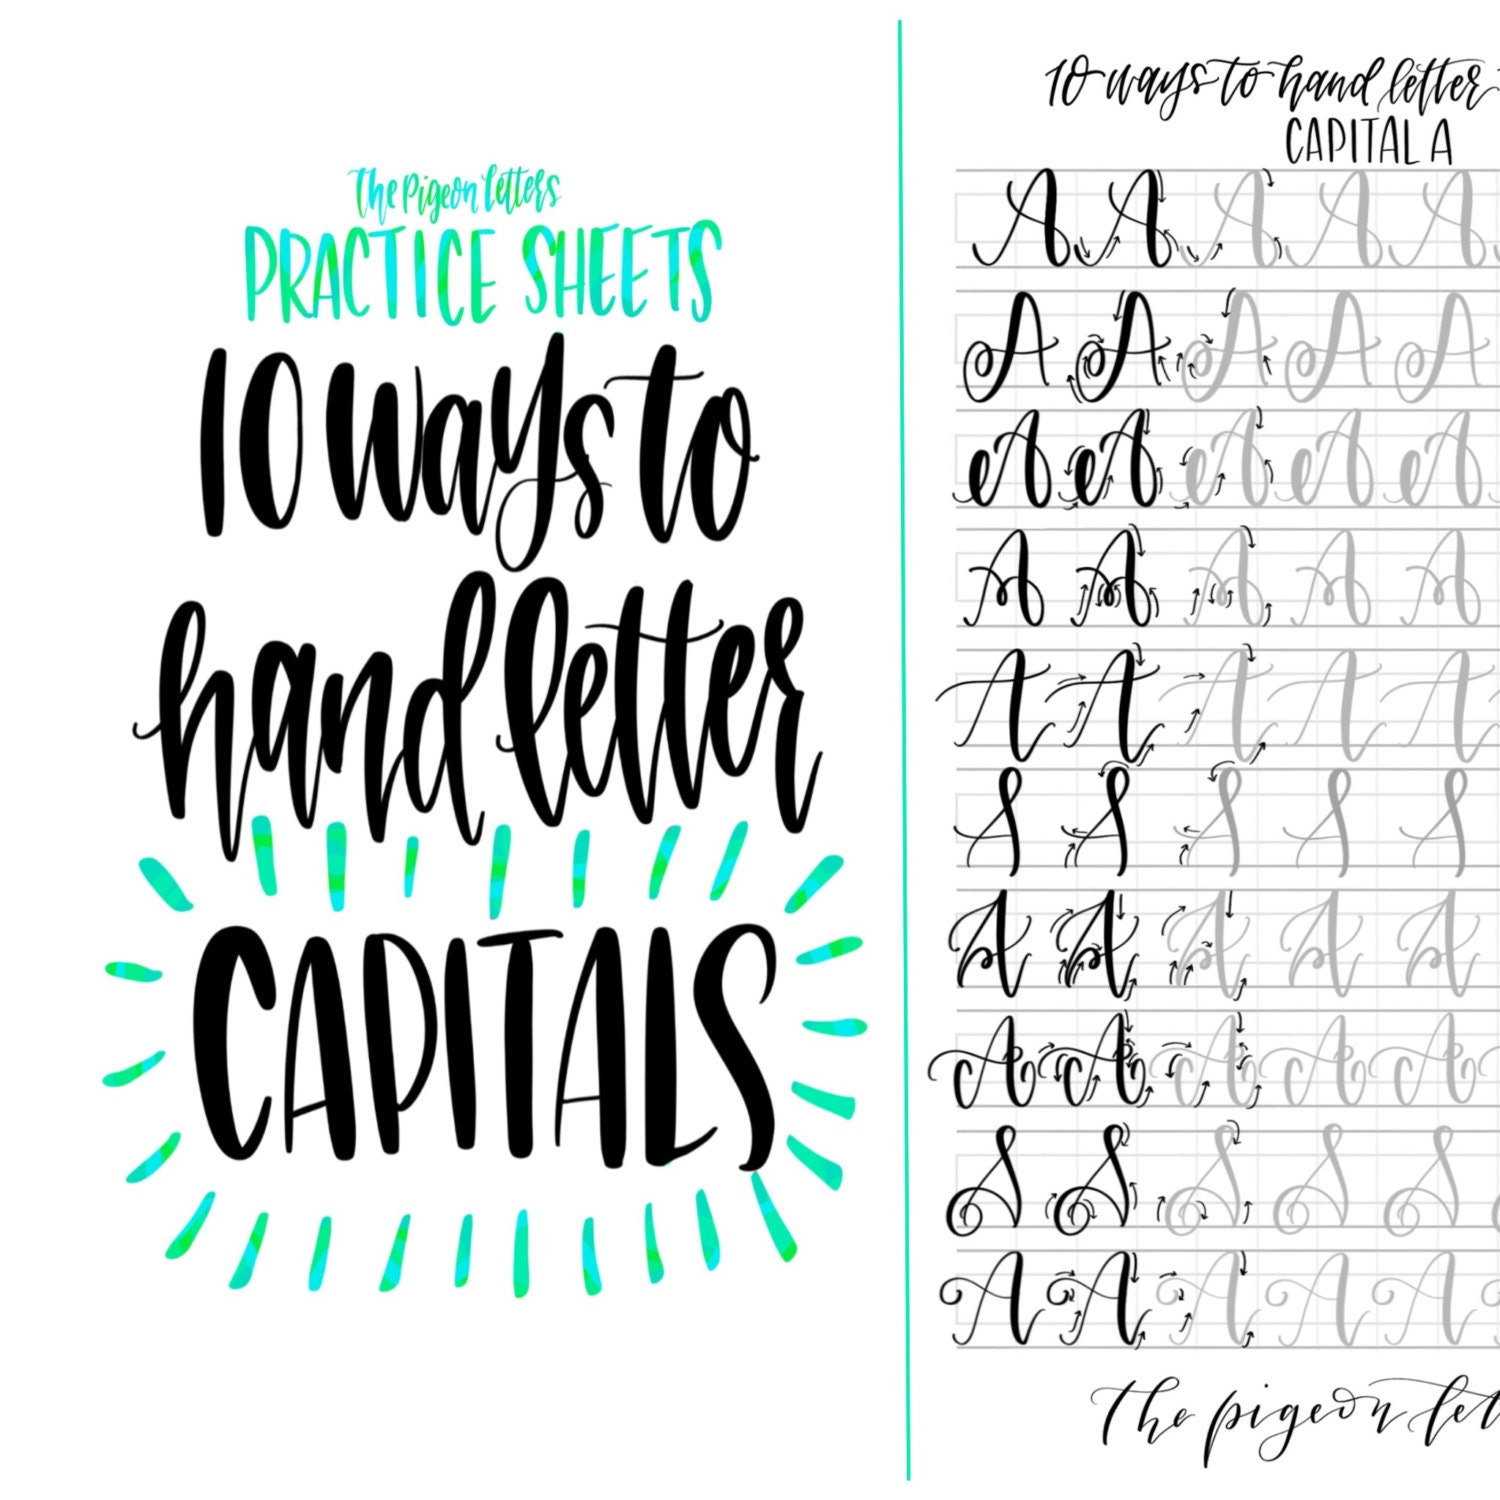 Hand lettering practice sheets ways to letter